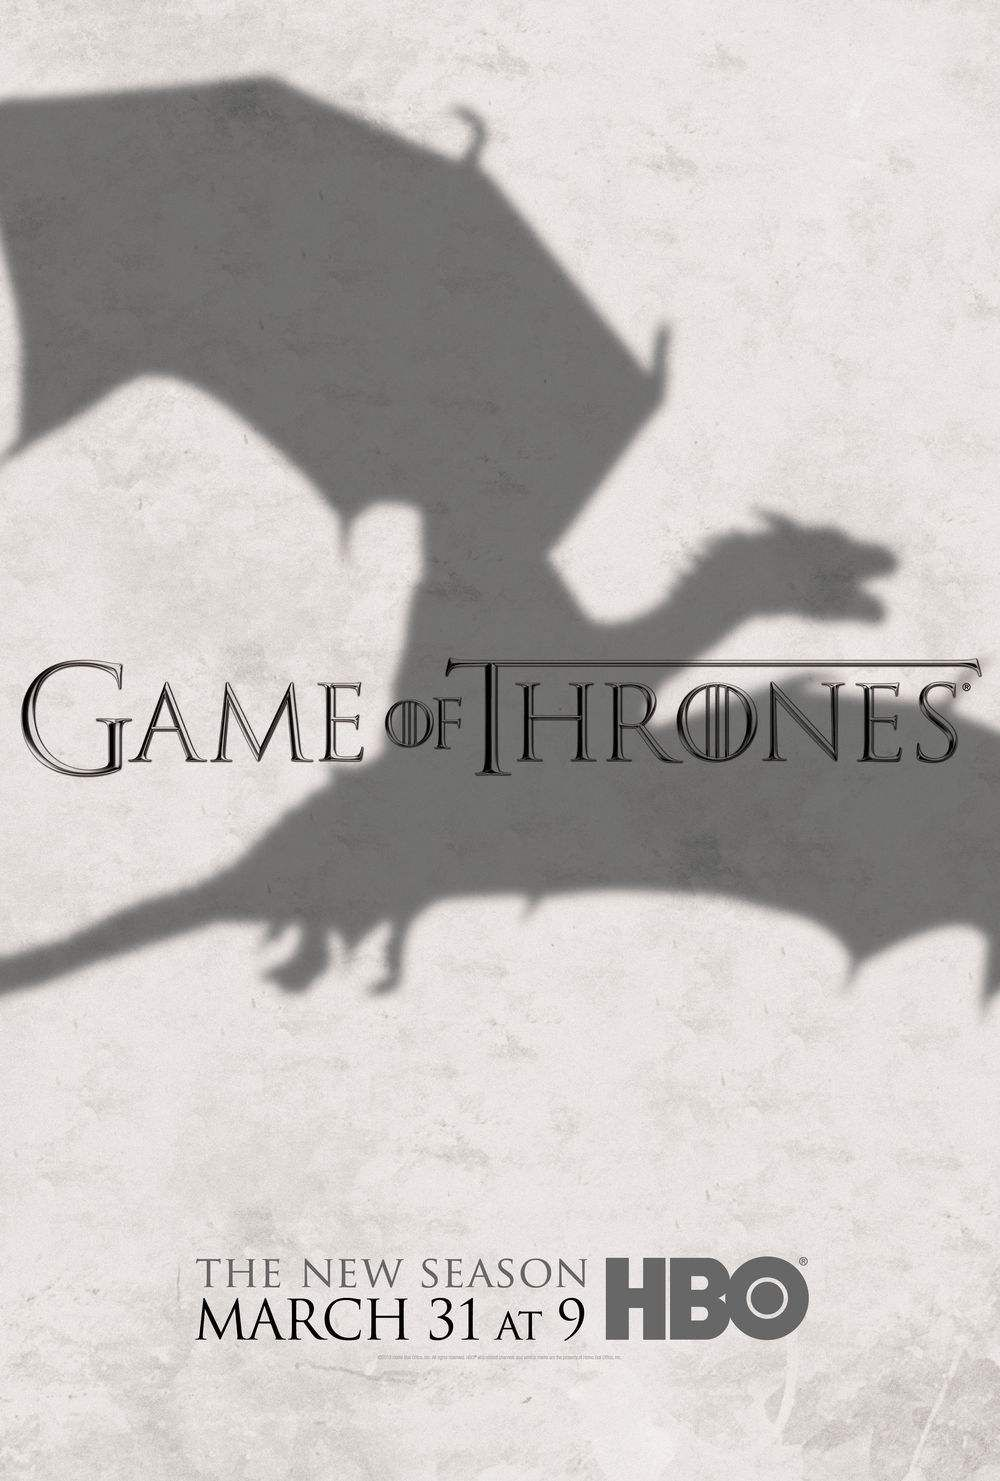 Game Of Thrones 3sezon 1bölüm 720p Altyazılı Izle Game Of